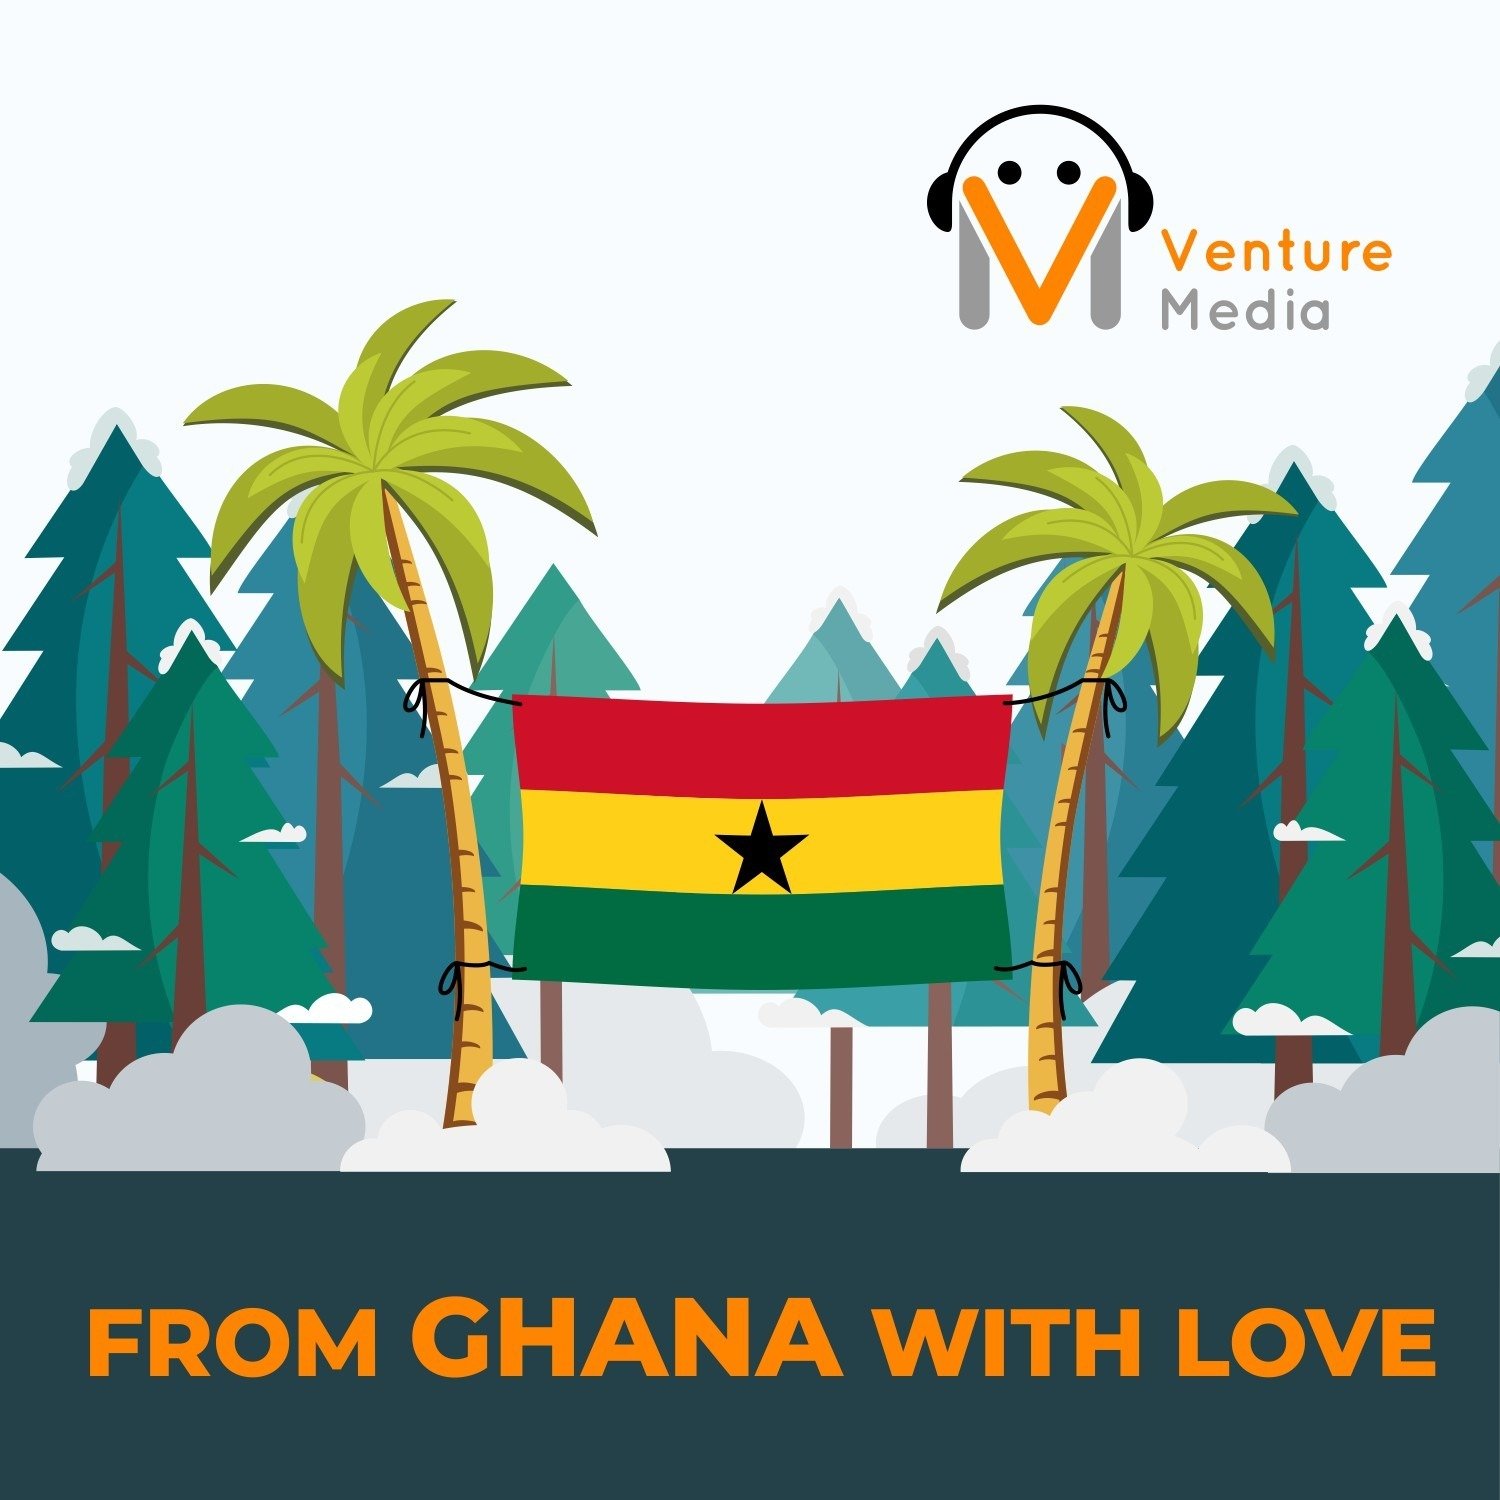 From Ghana with Love:Venture Media